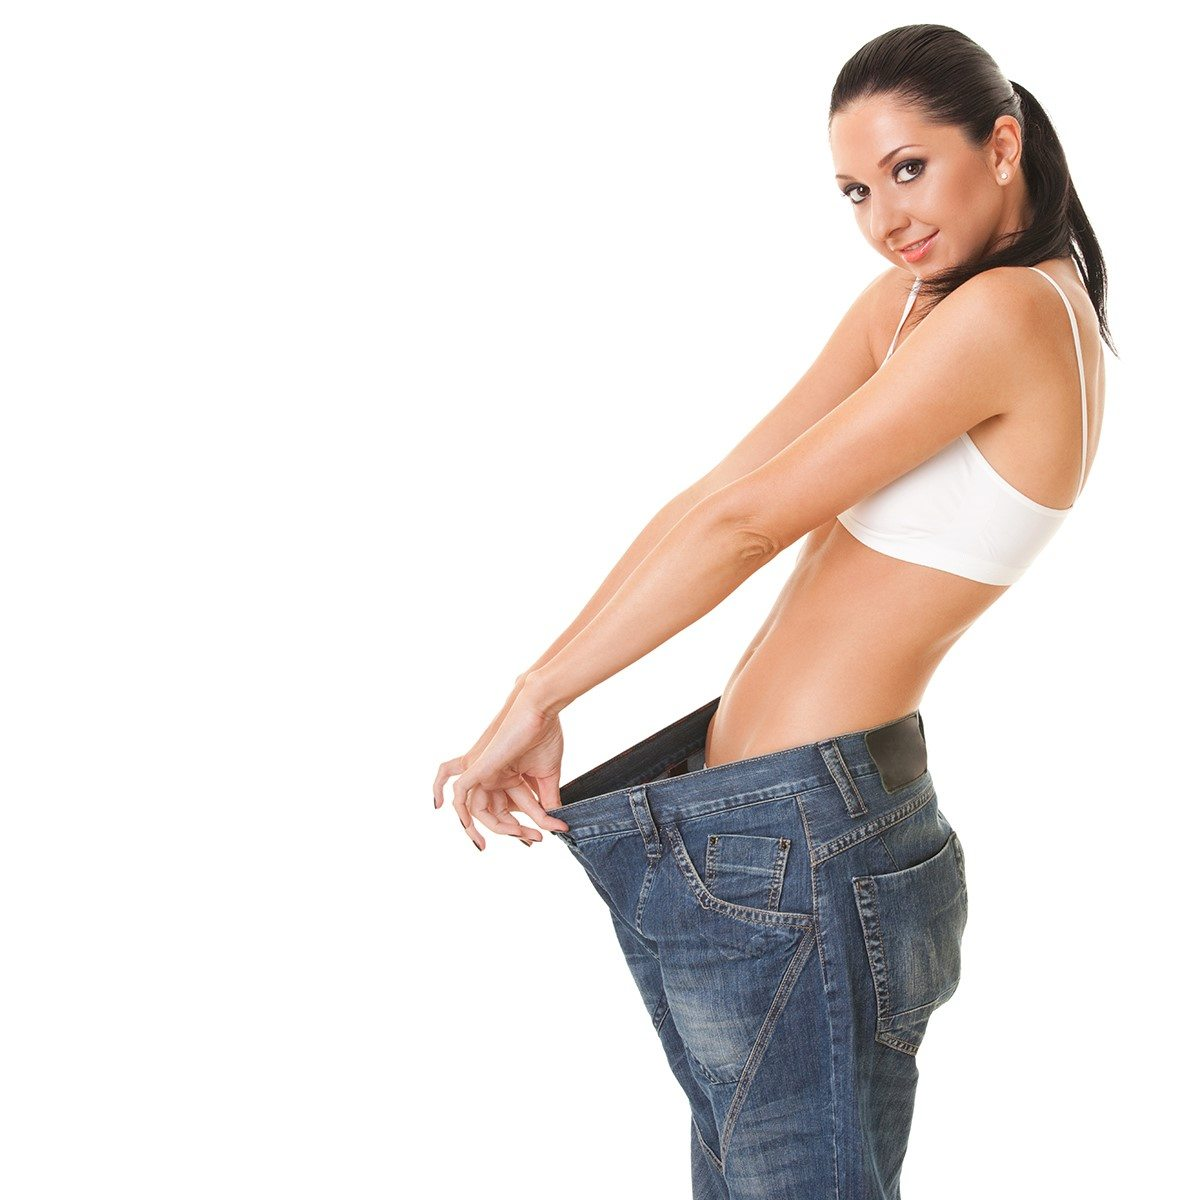 Shrink to fit - MedShape Weight Loss Clinics